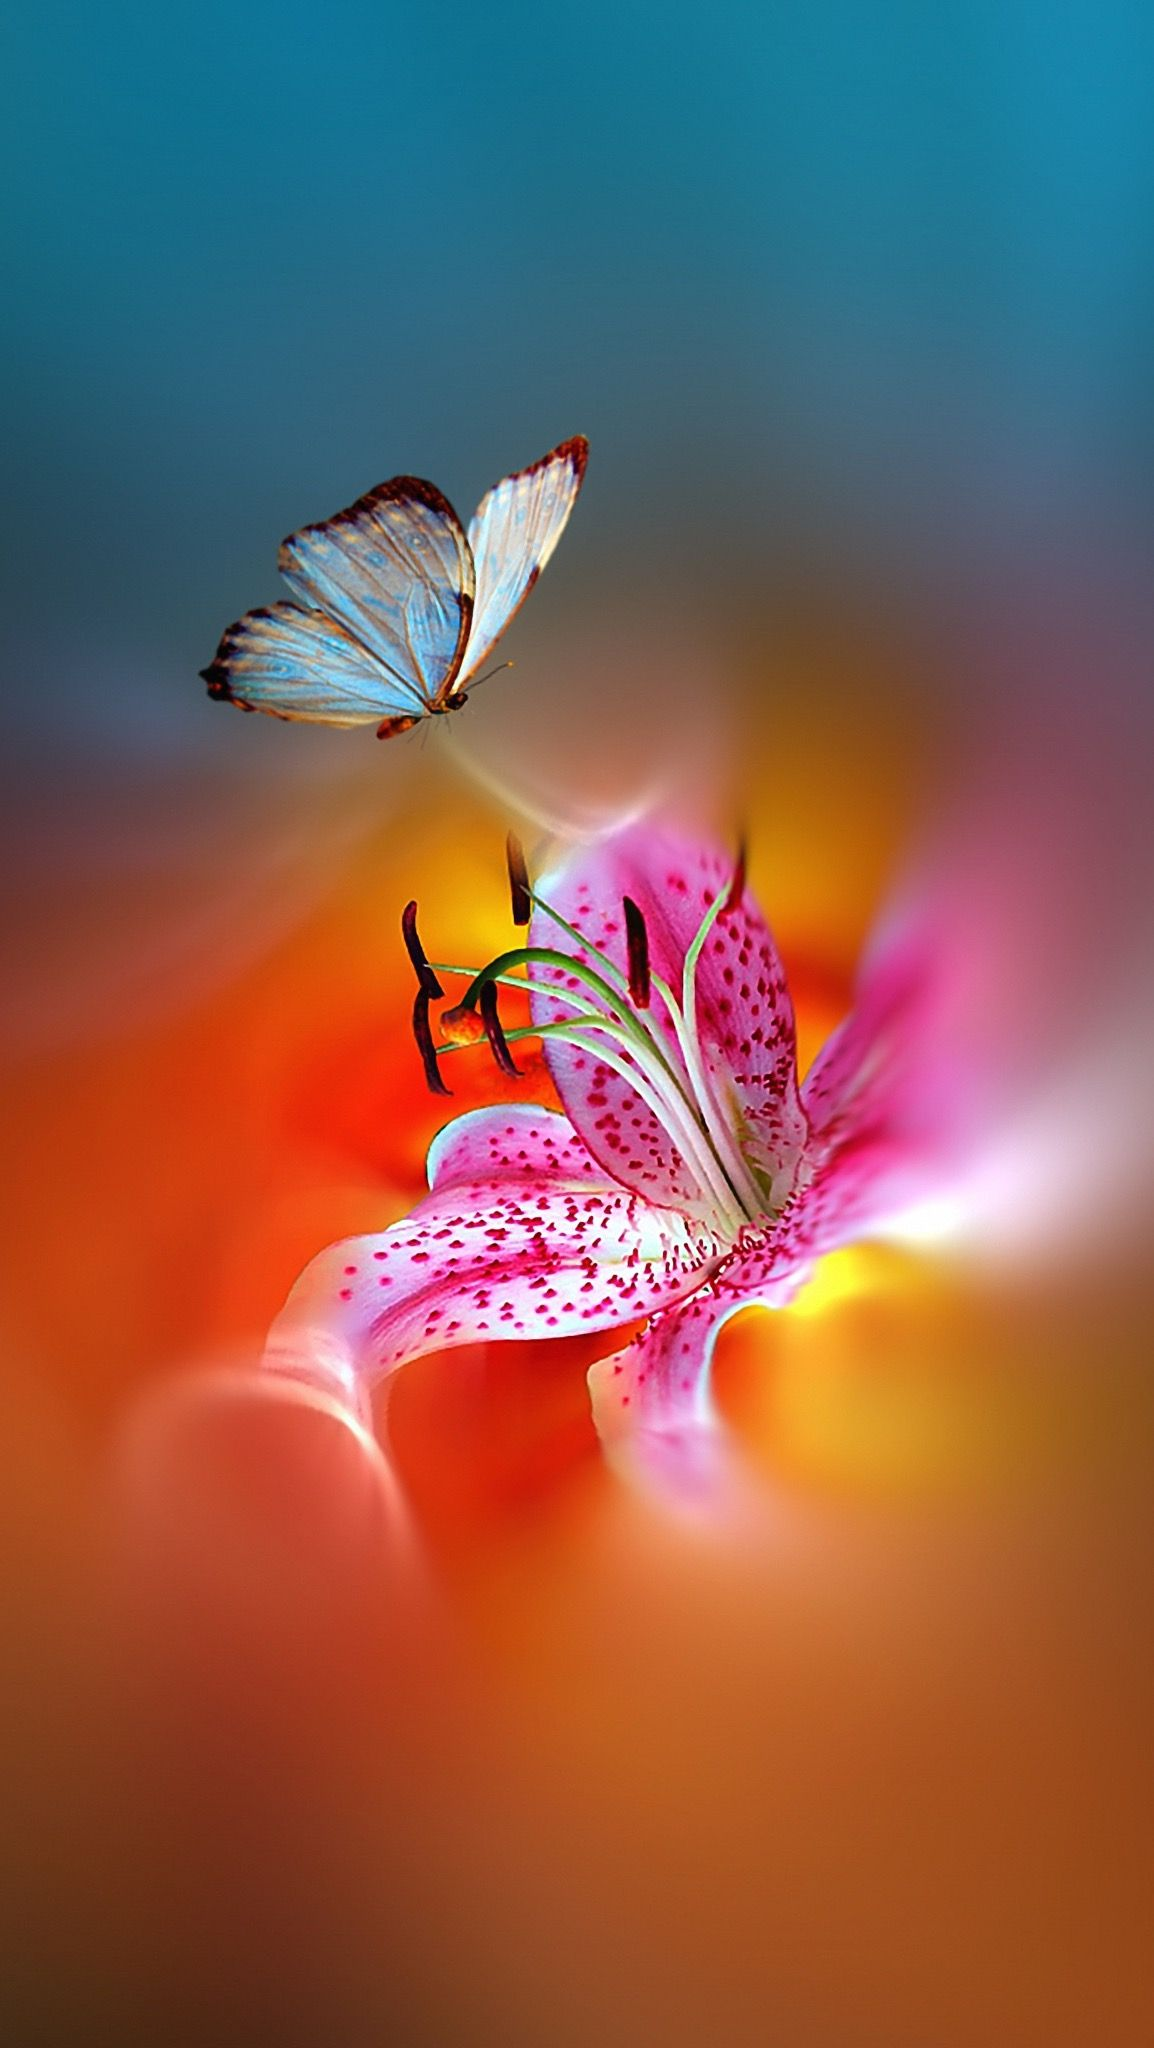 Pin By Elif Kara On Kelebek Nature Iphone Wallpaper Butterfly